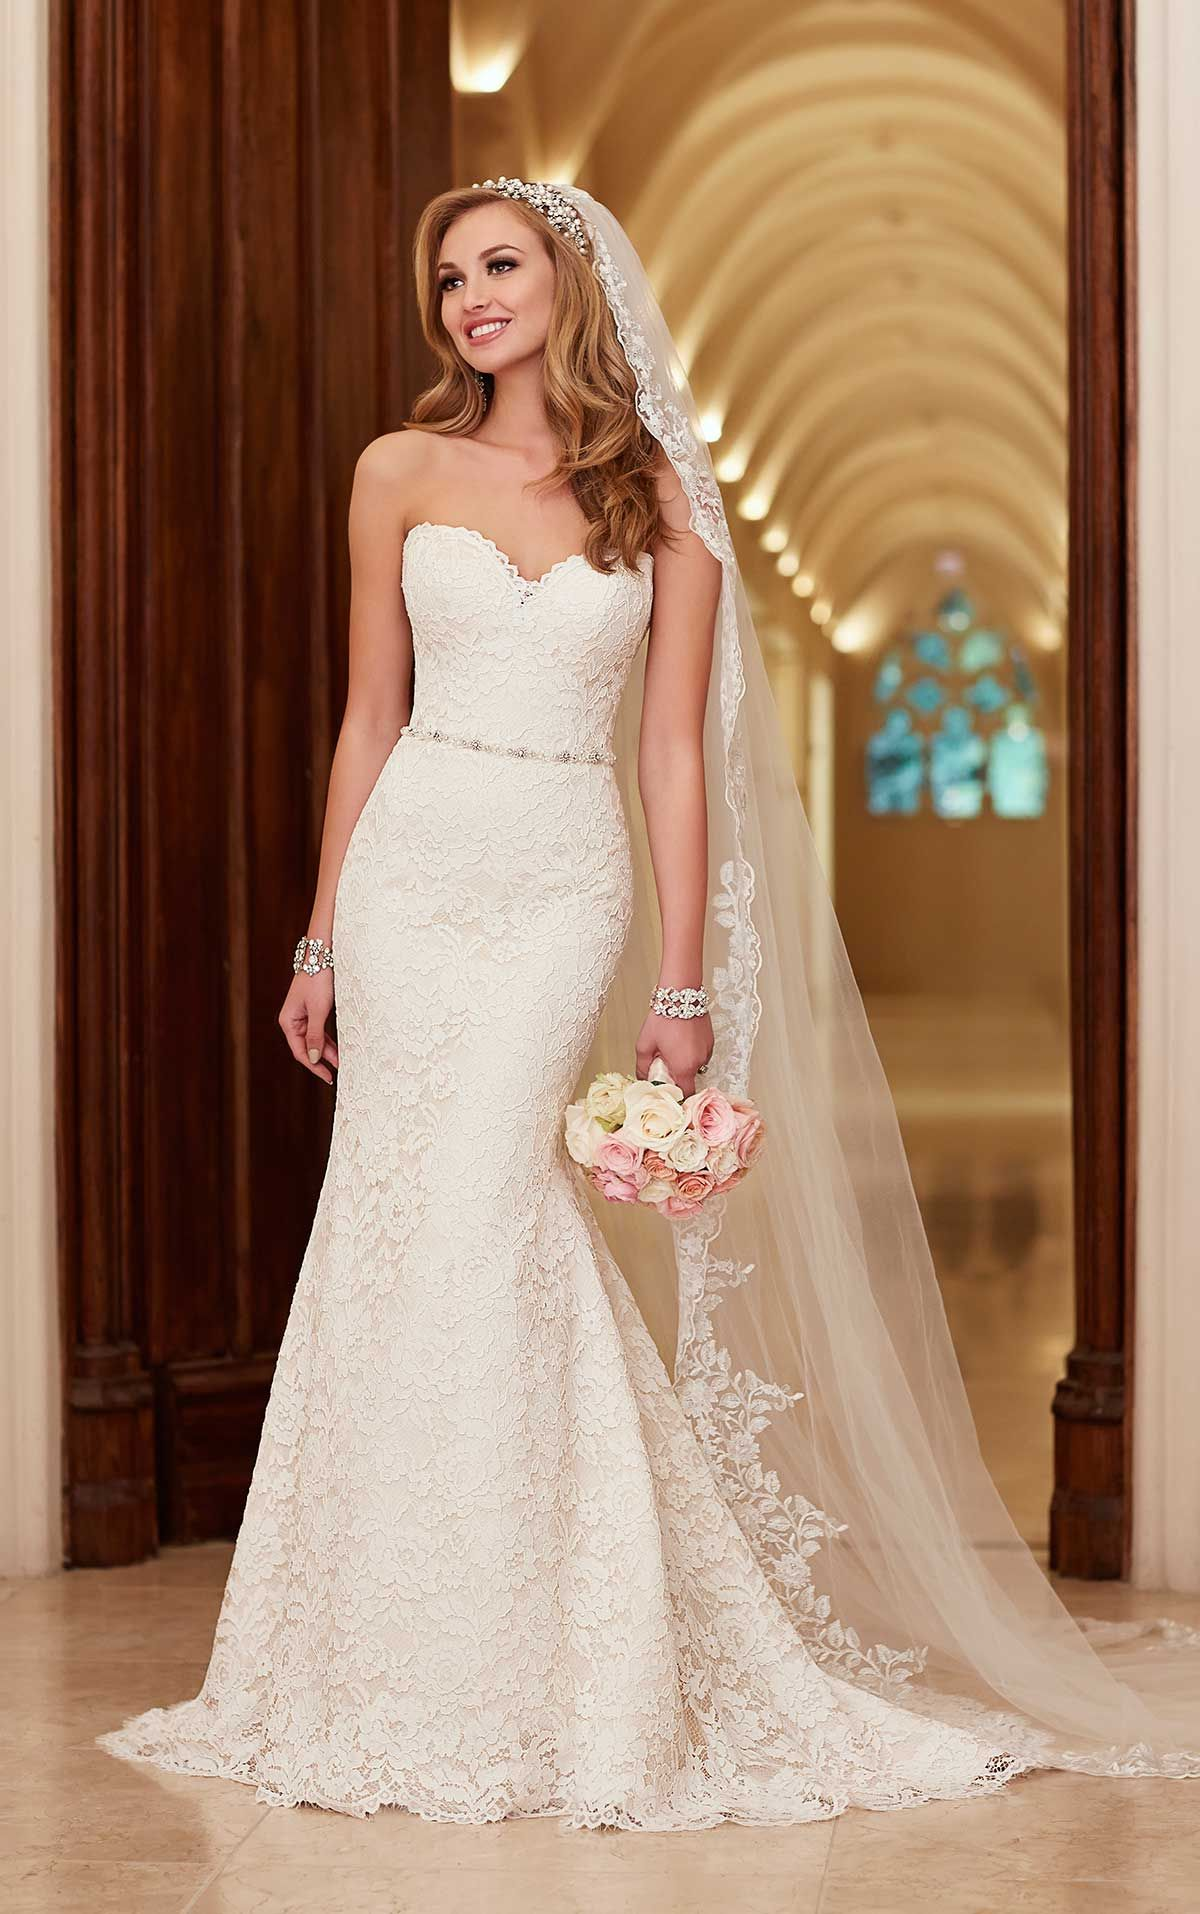 Satin and lace wedding dresses plus size dresses for wedding